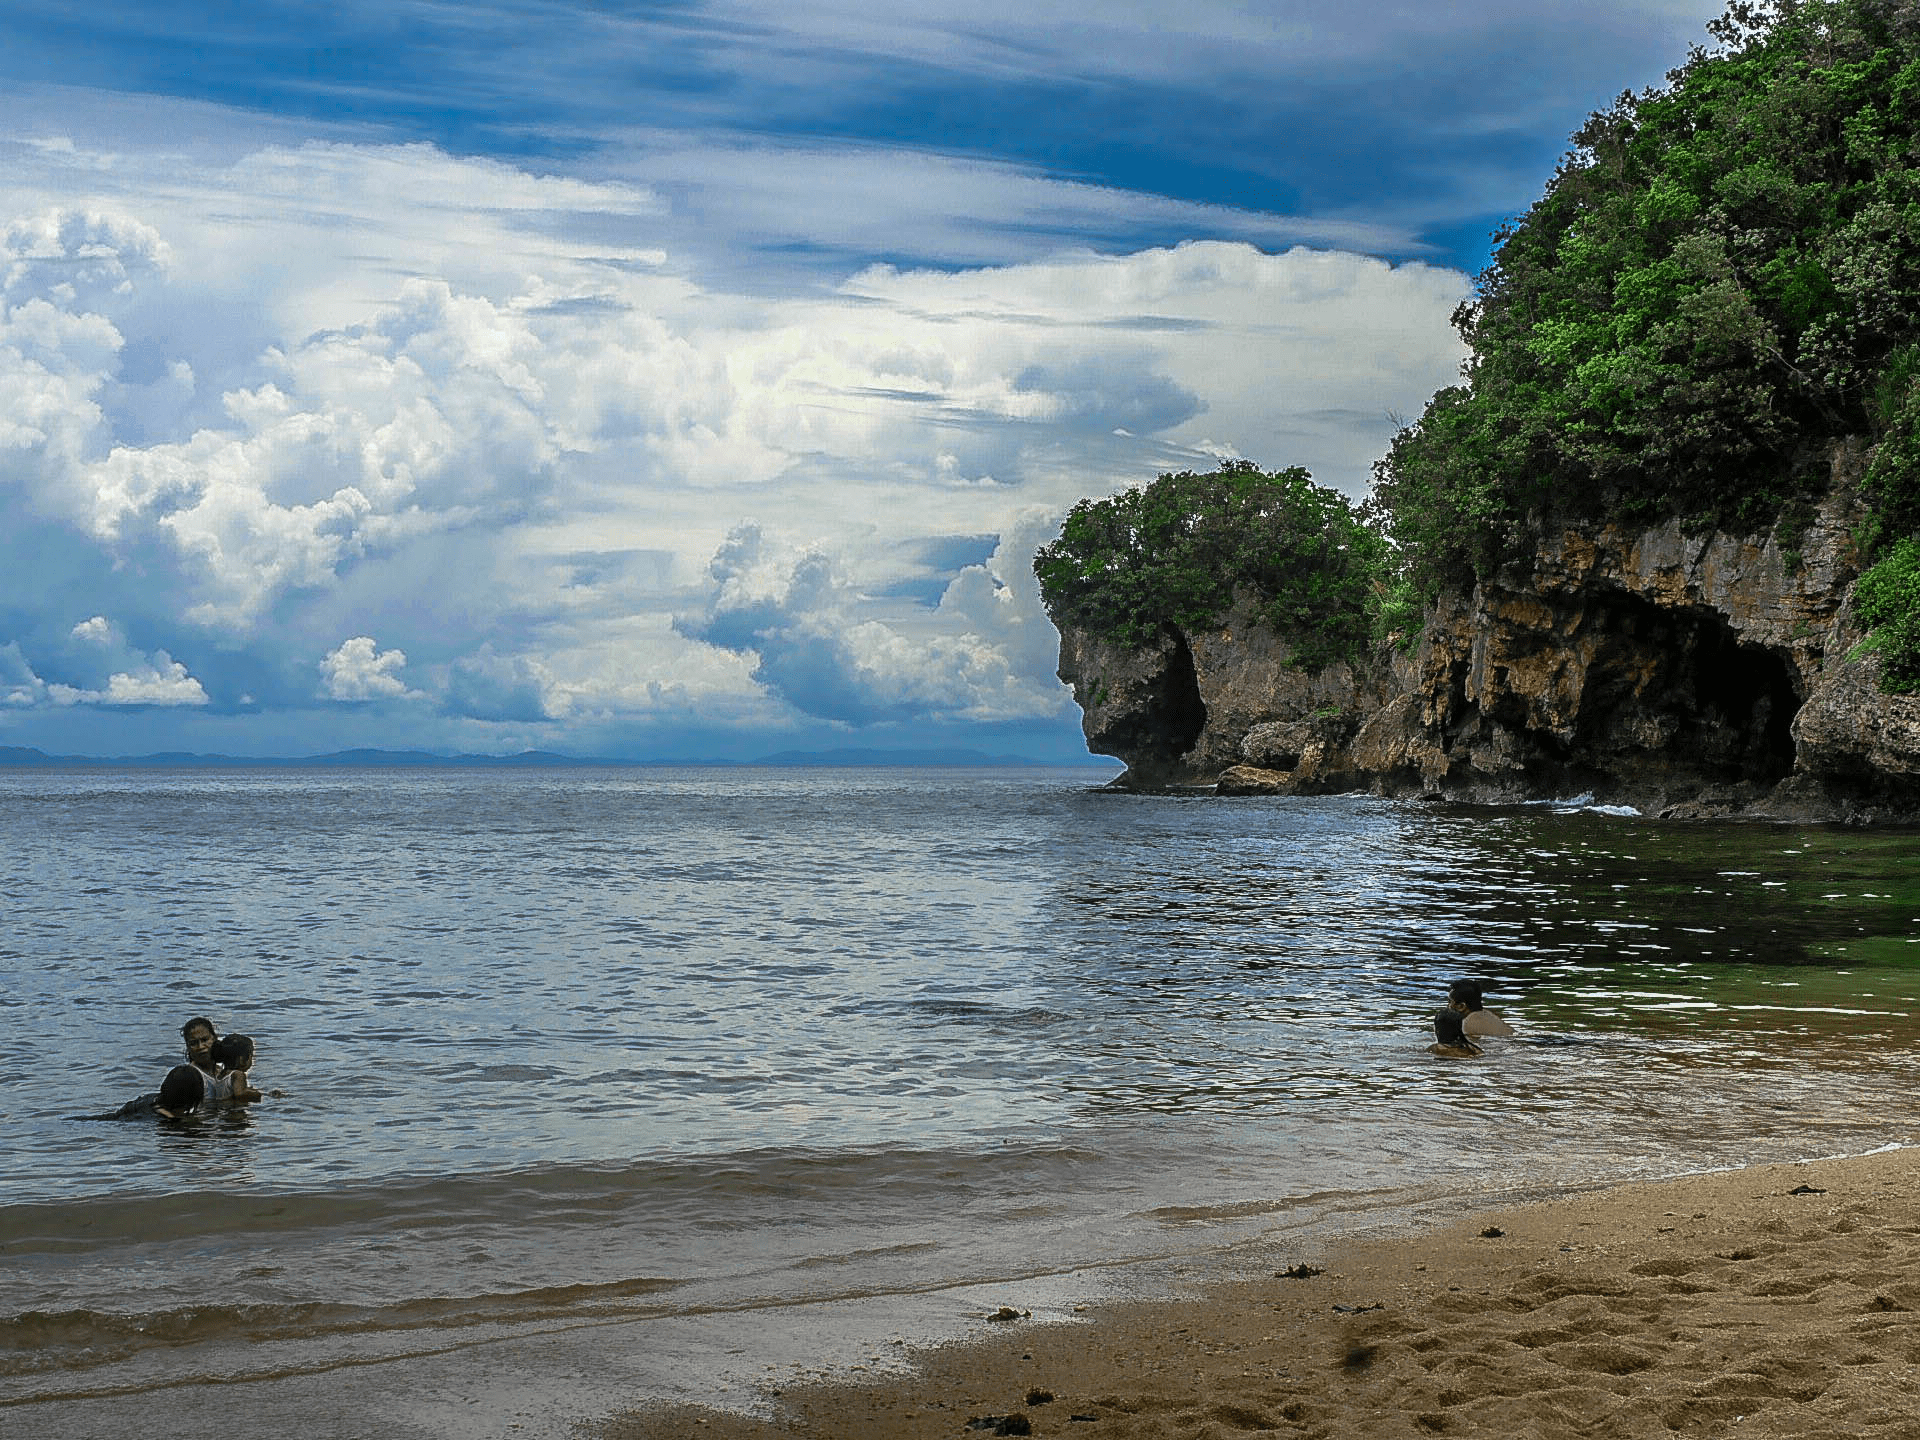 jesus rock formation at talisoy beach in catanduanes island philippines